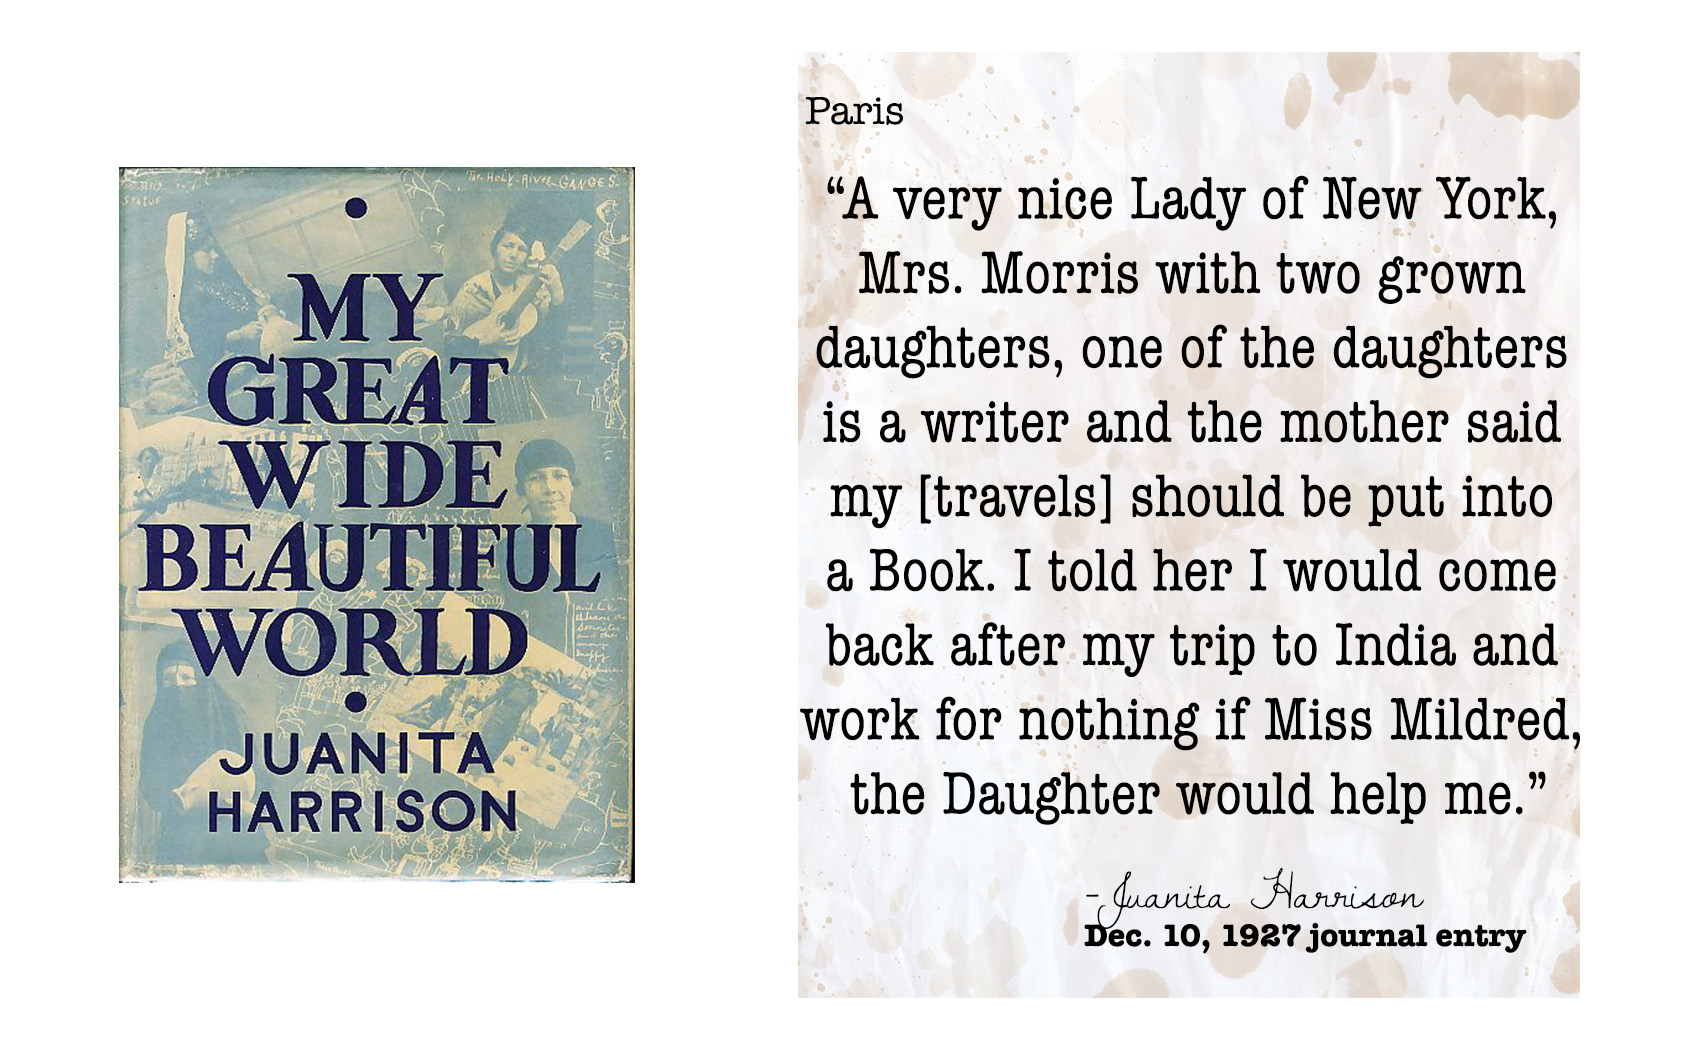 The opportunity to publish her own book elated Juanita, inspiring her to keep detailed record of all she'd see and experience along her trip.